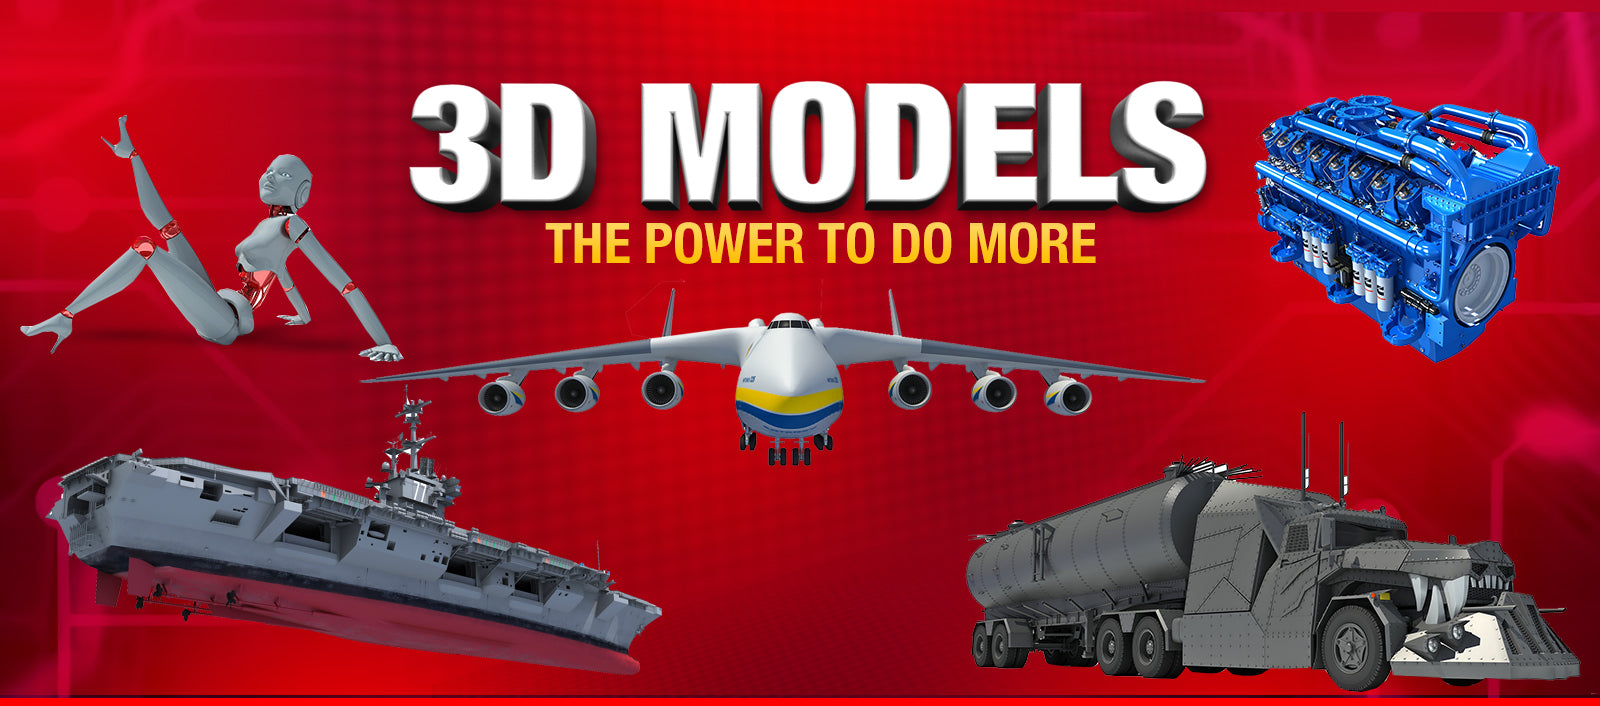 Best Ways to Buy 3D Models